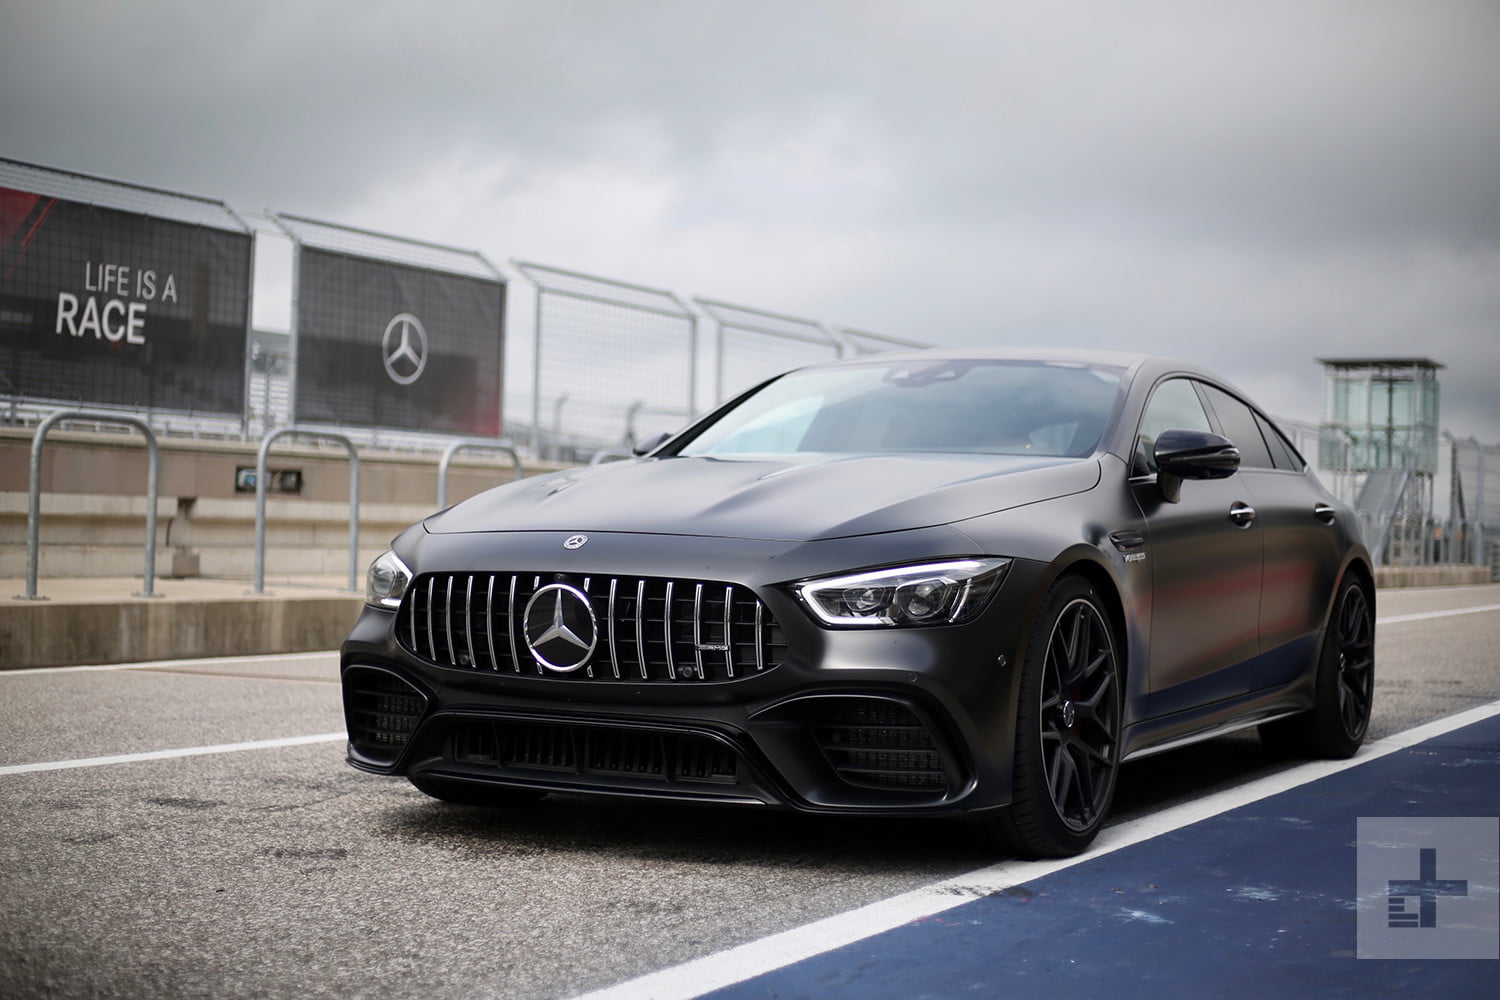 Nieuw Mercedes-AMG GT 73 Twin-Turbo V8 Plug-In Hybrid Coming Soon SM-84